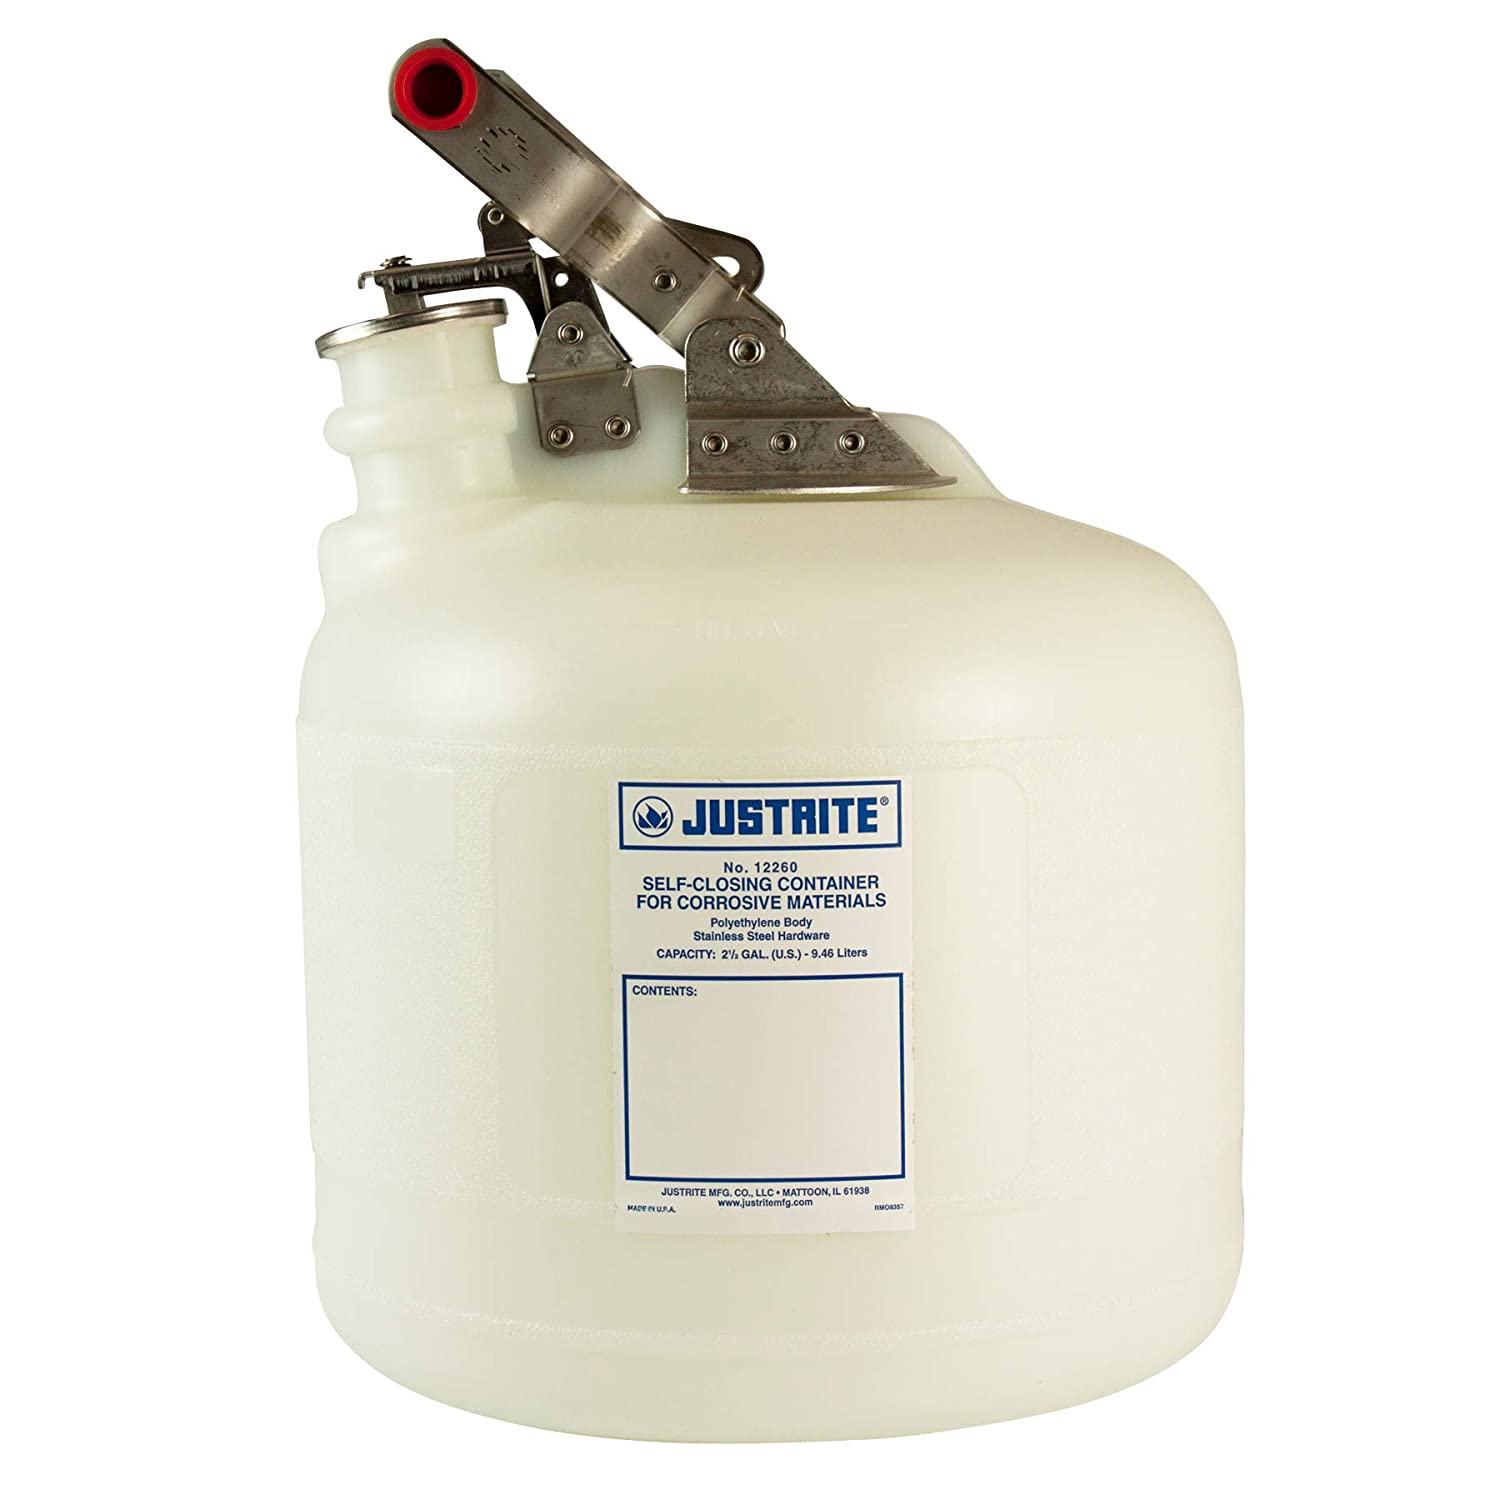 Justrite 12260 Safety Container, Corrosives, 2.5 Gal